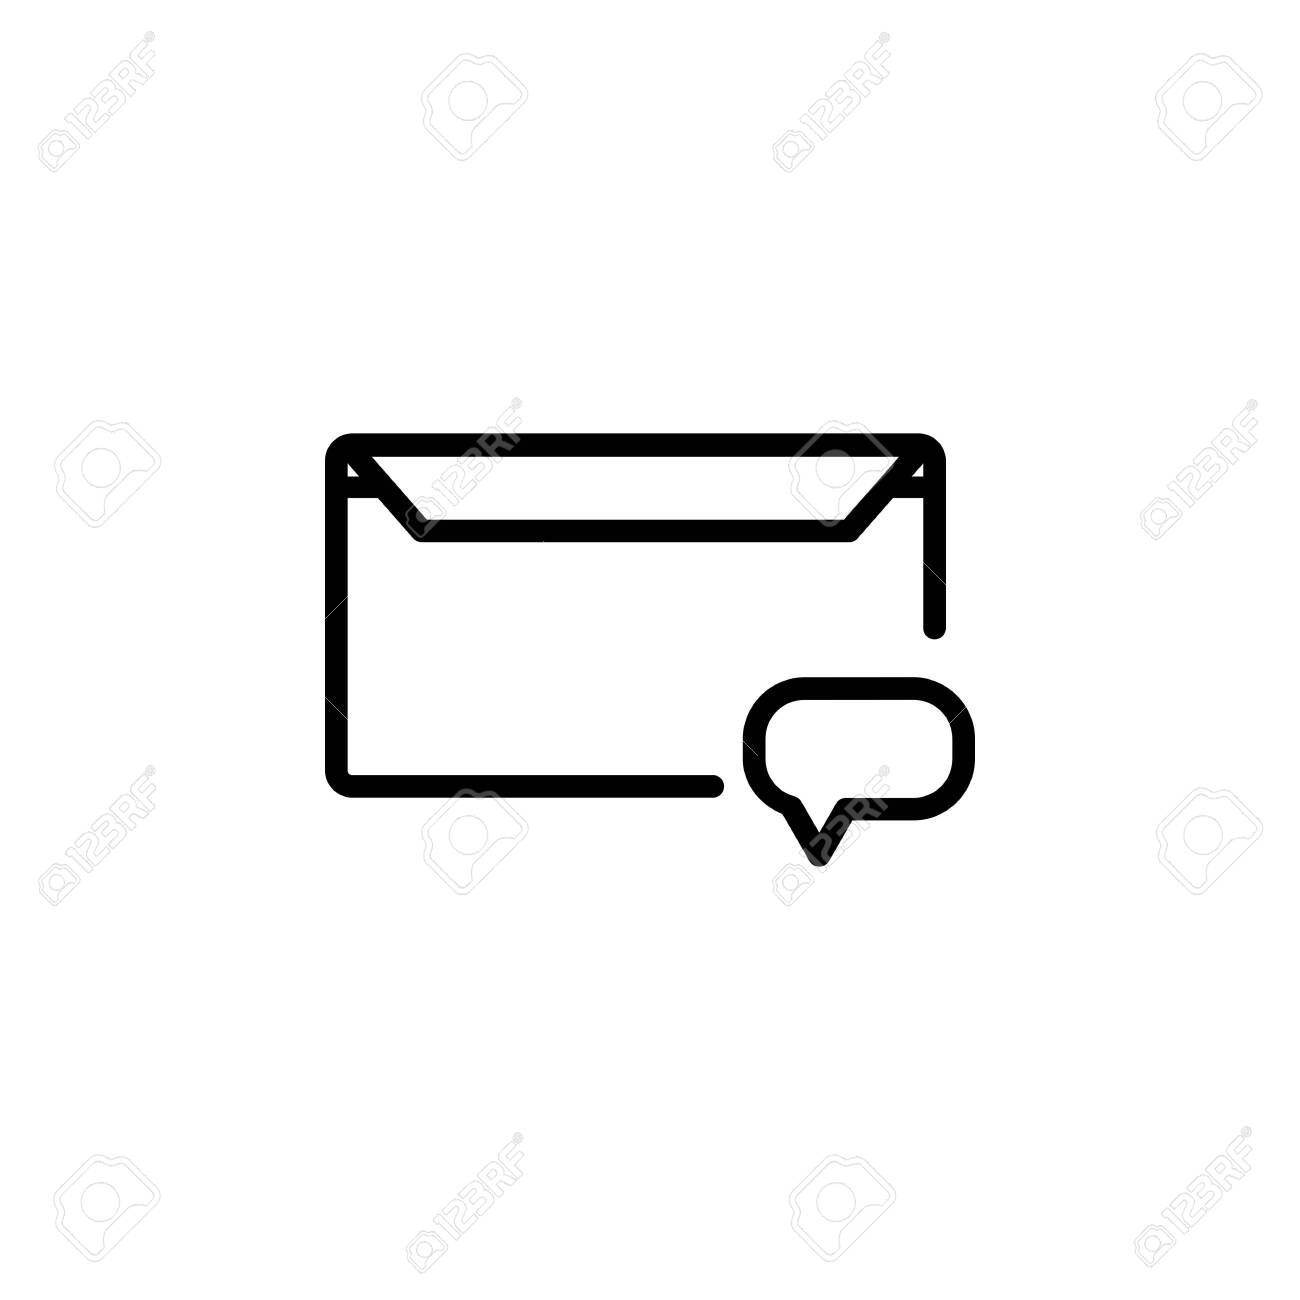 message icon design line style comment icon logo and presentation royalty free cliparts vectors and stock illustration image 137547488 123rf com